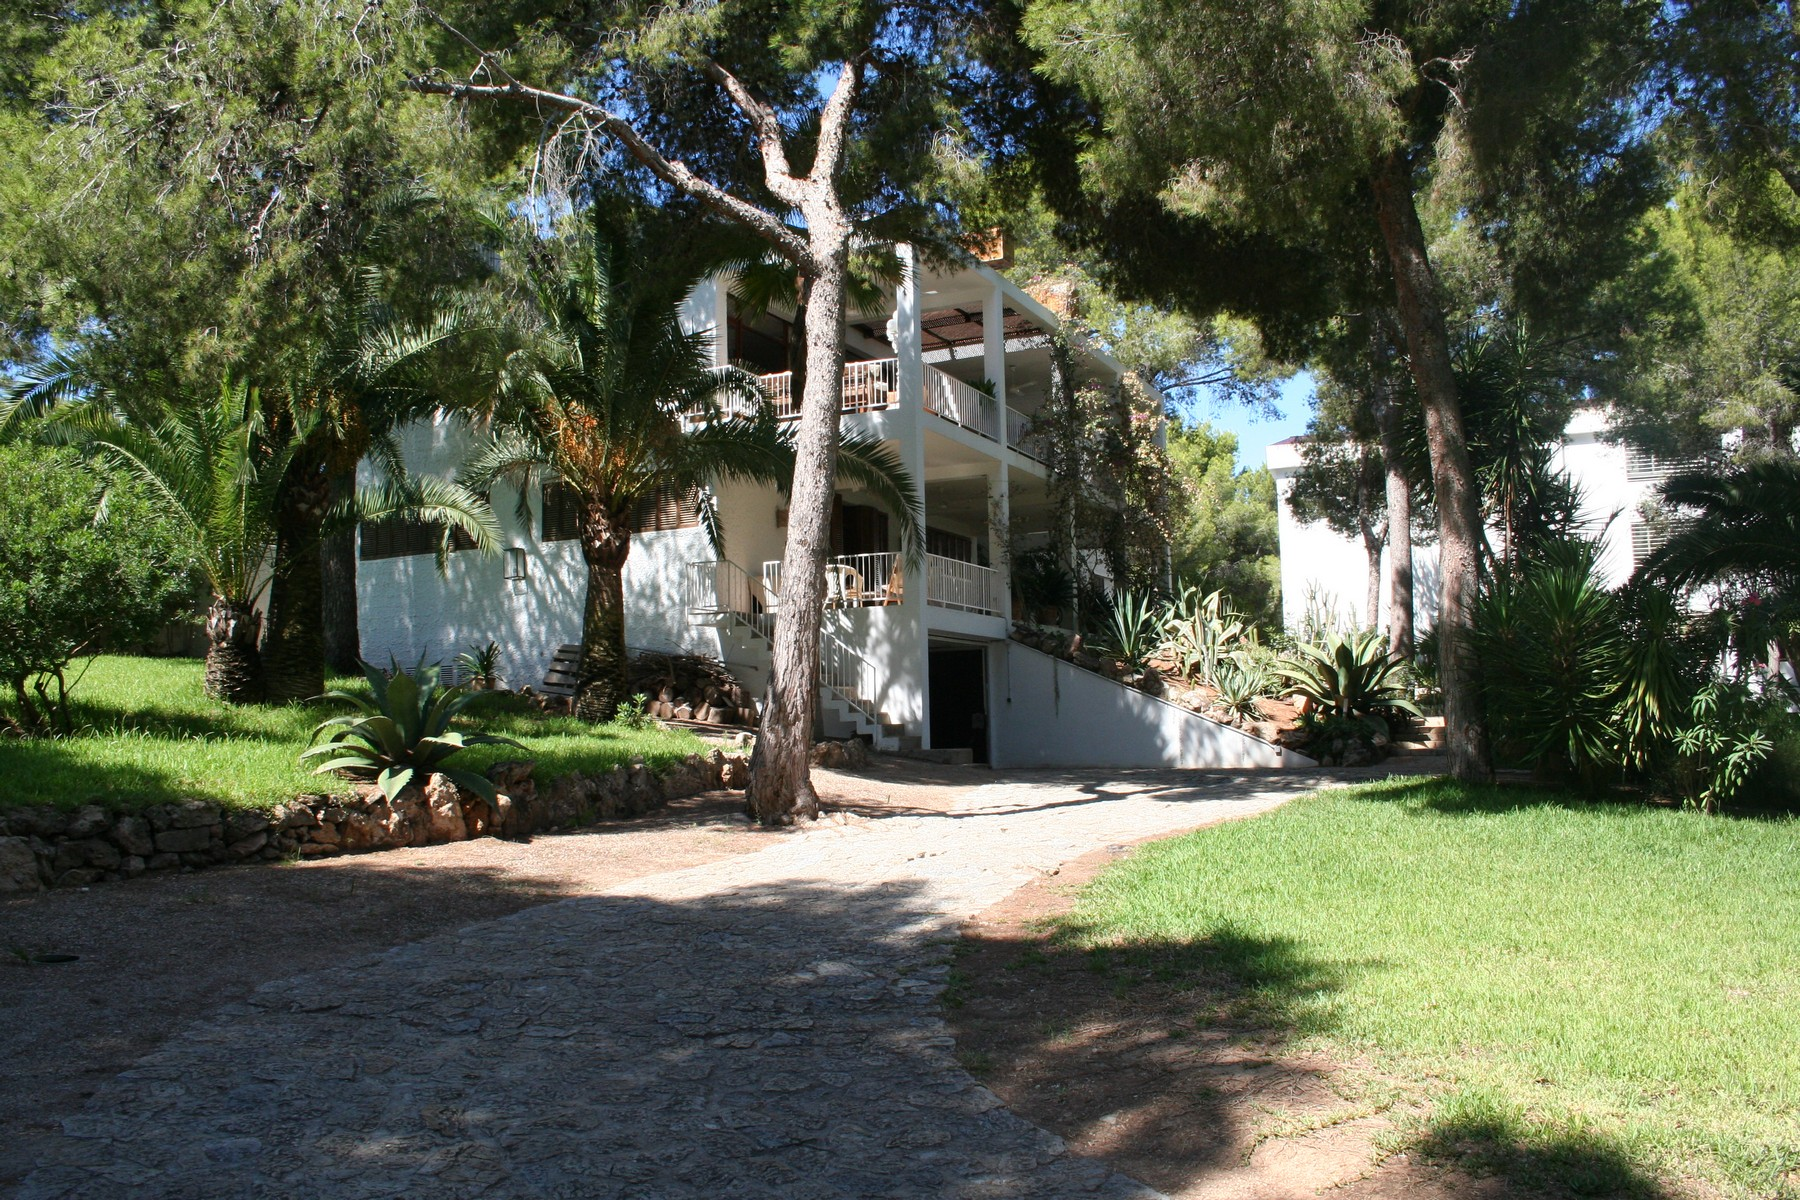 Single Family Home for Sale at Villa on a large plot close to a small beach Santa Ponsa, Mallorca, 07180 Spain